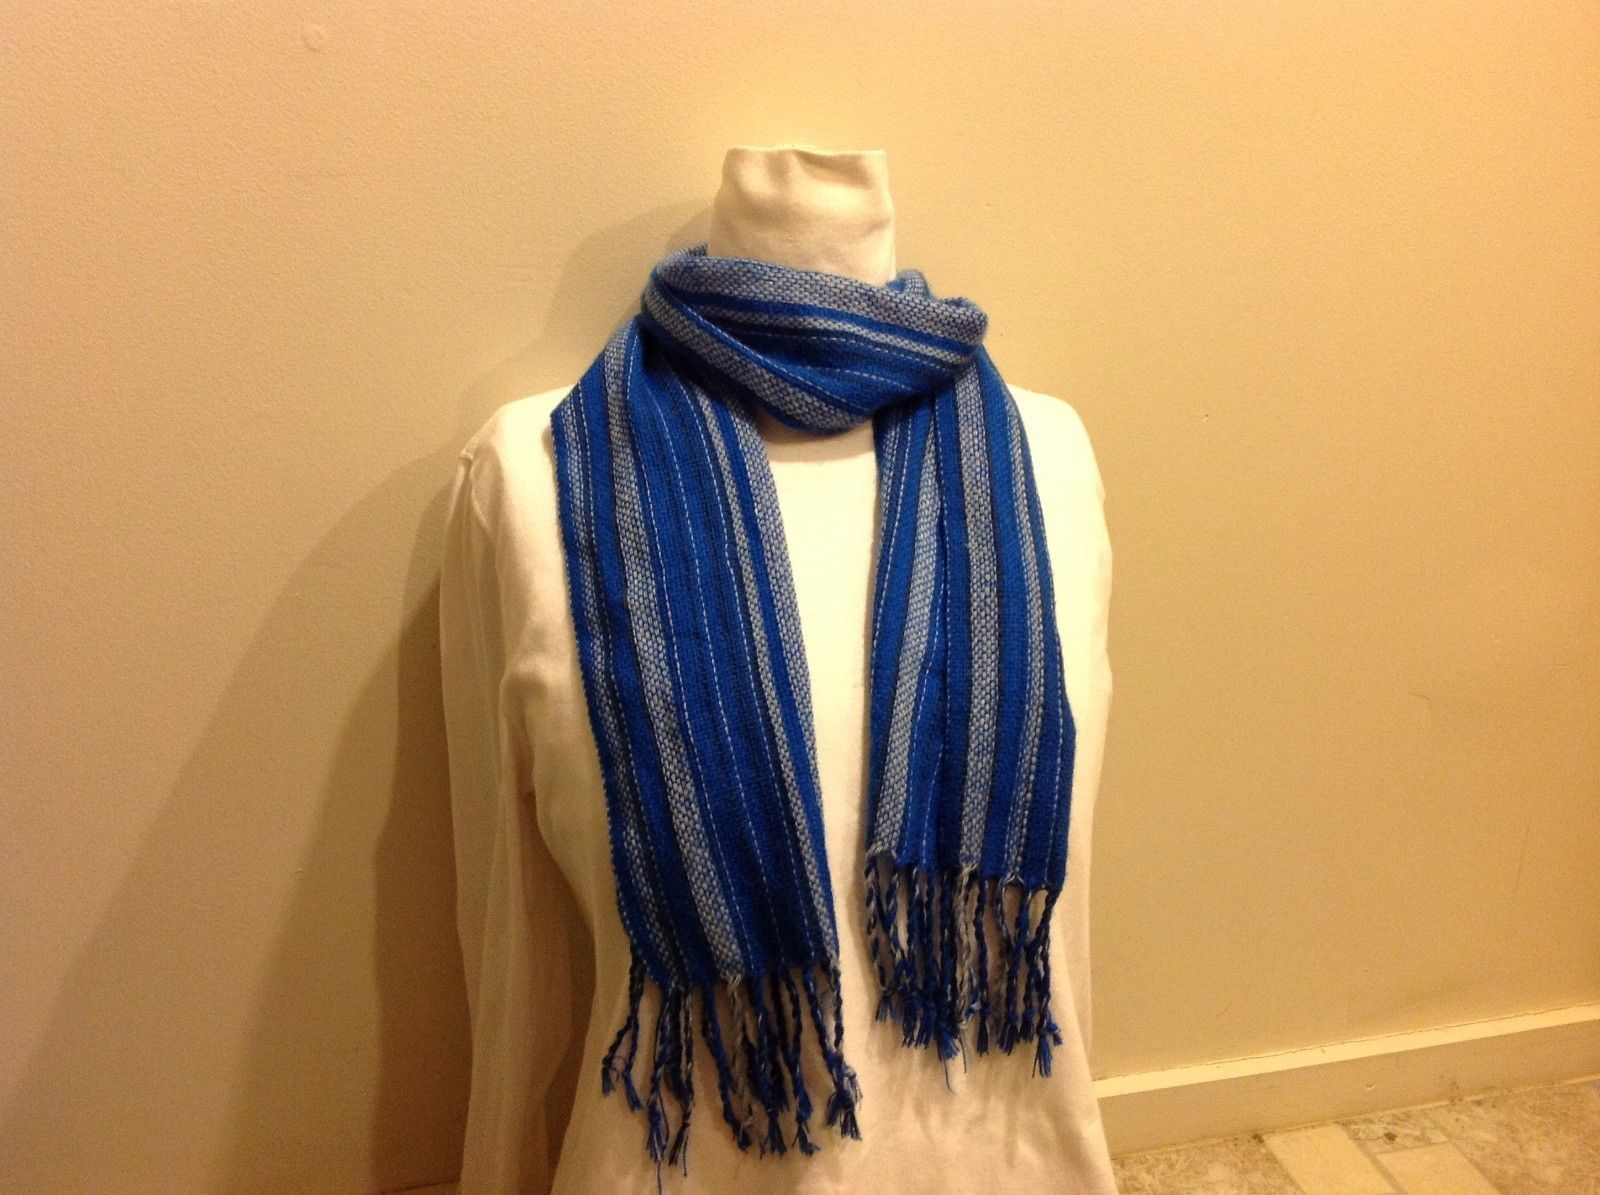 Vertical Blue Striped Knit Scarf w Fringed and Braided Ends